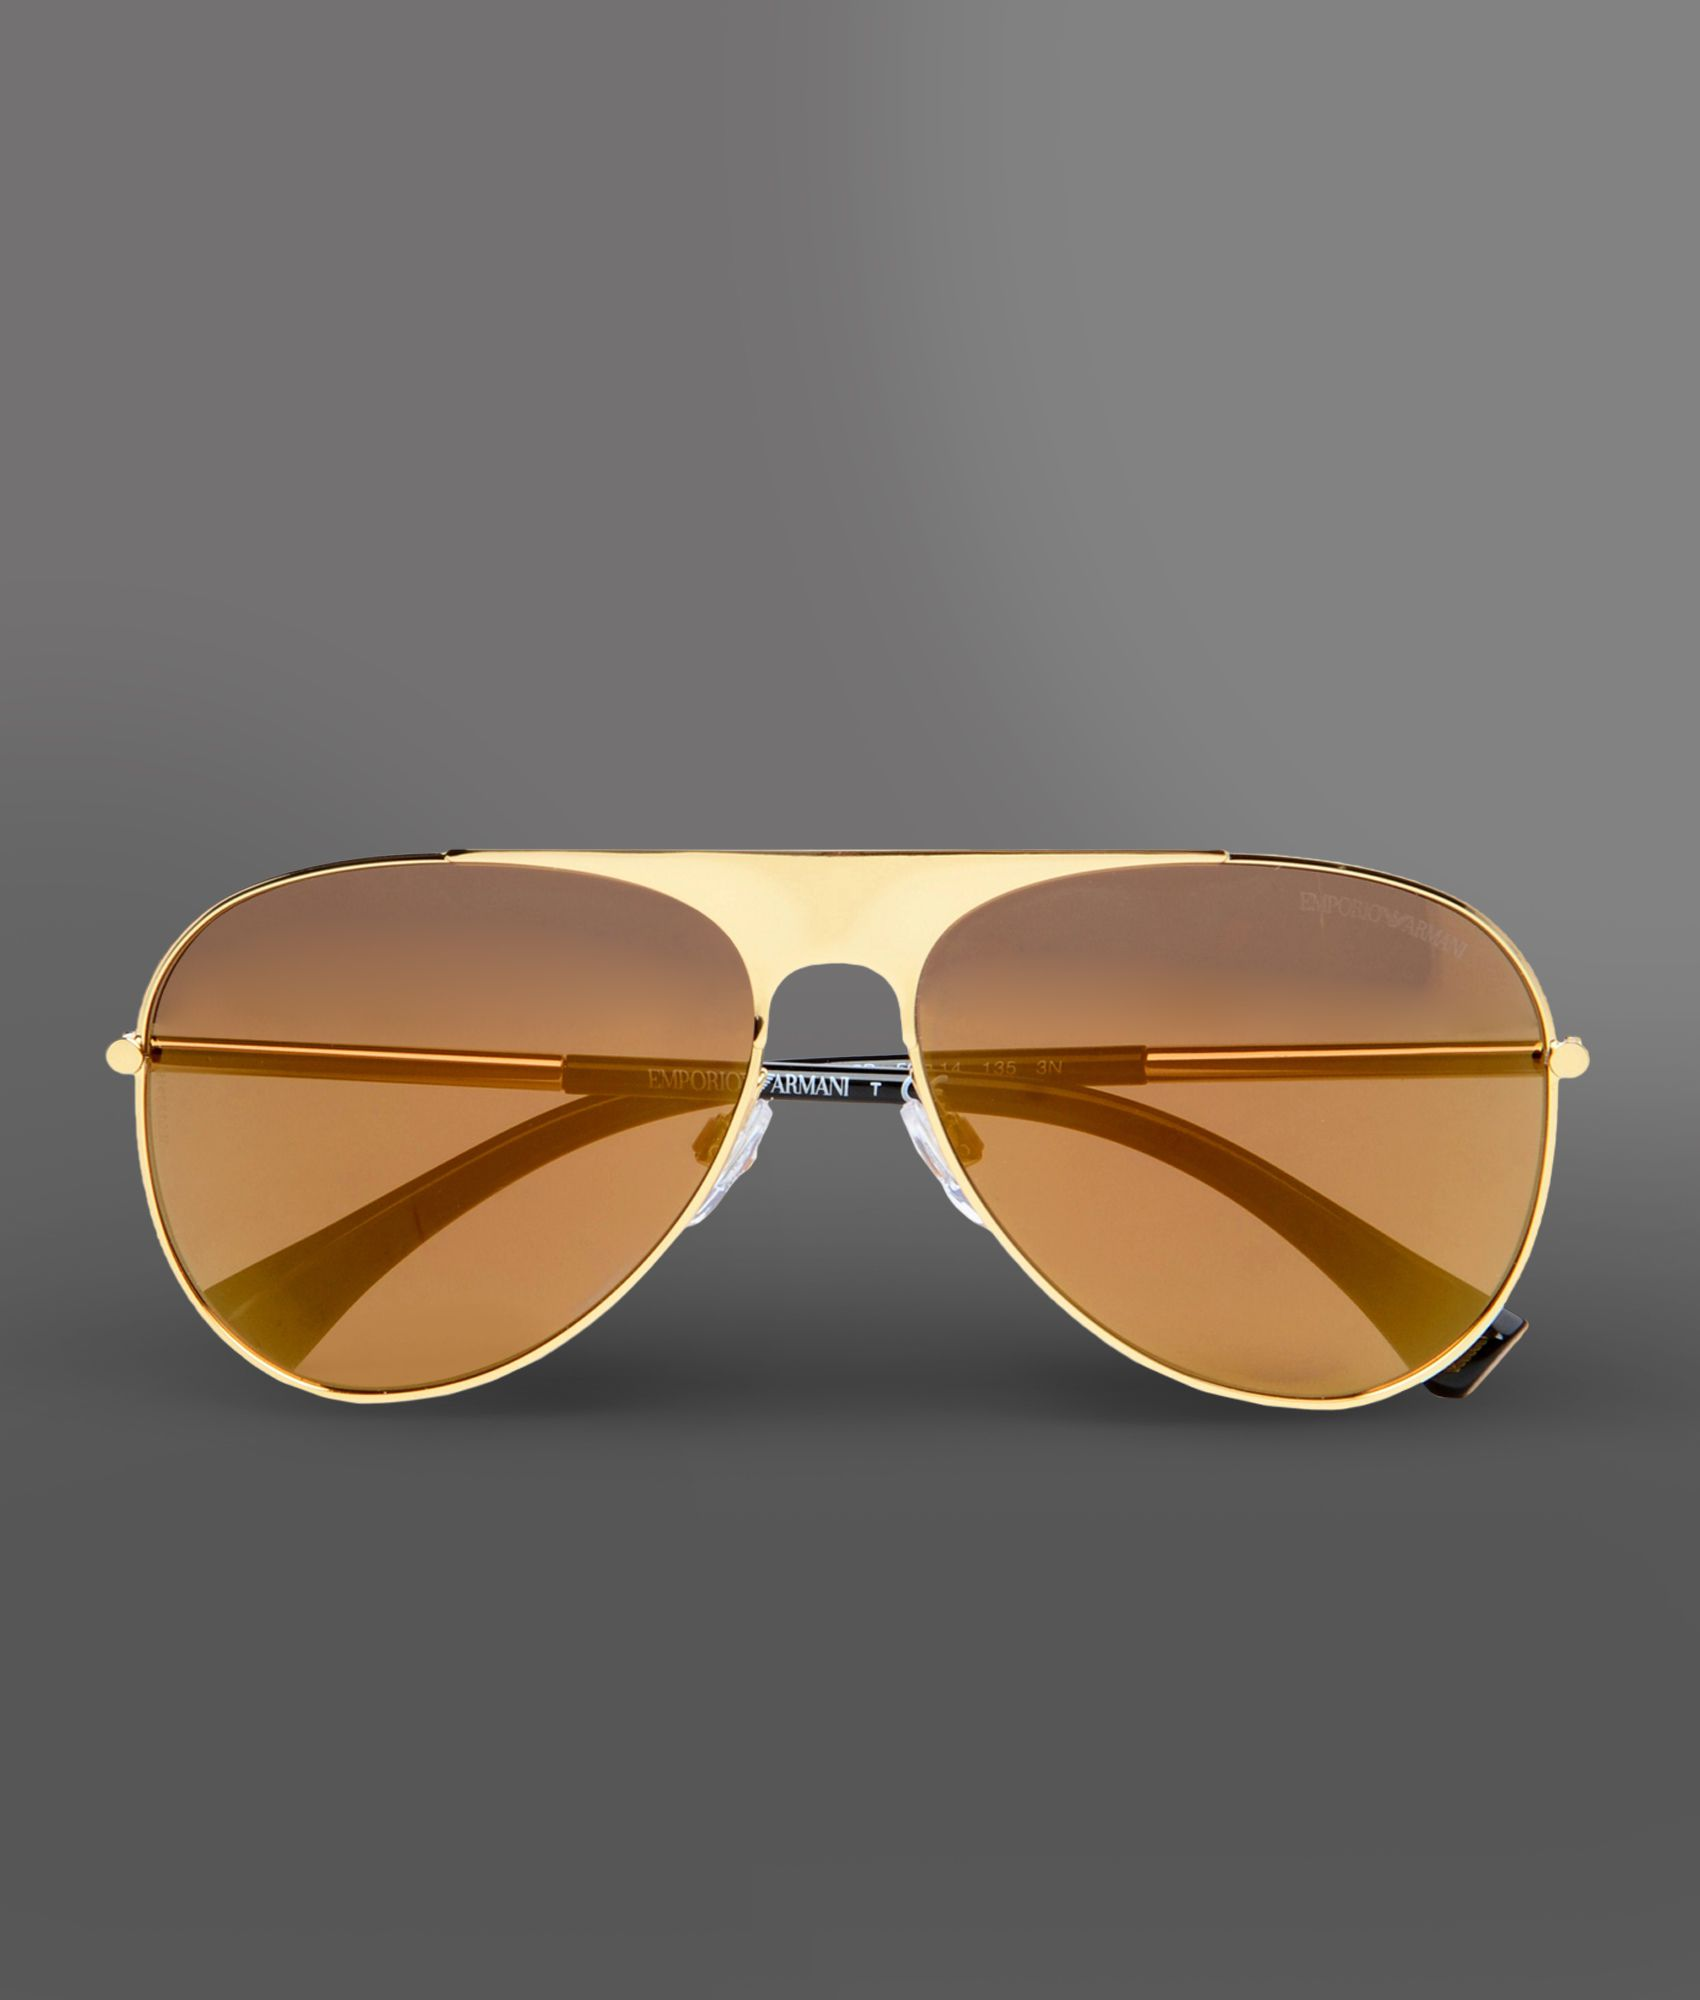 Emporio armani Sunglasses in Gold Lyst